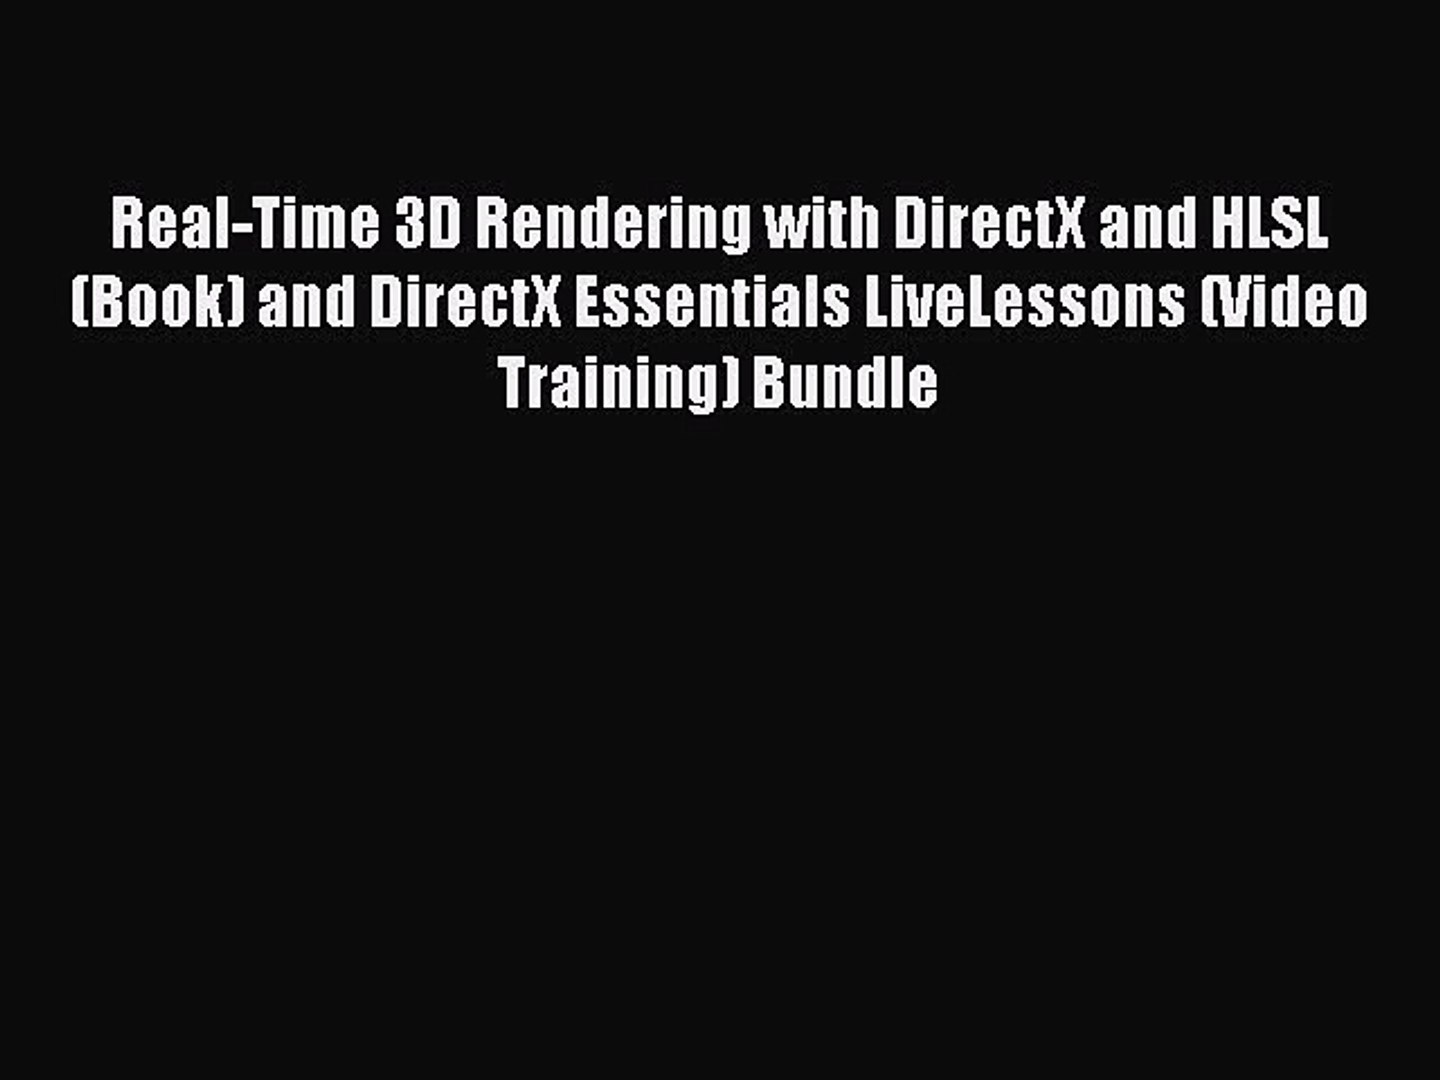 Download Real-Time 3D Rendering with DirectX and HLSL (Book) and DirectX  Essentials LiveLessons